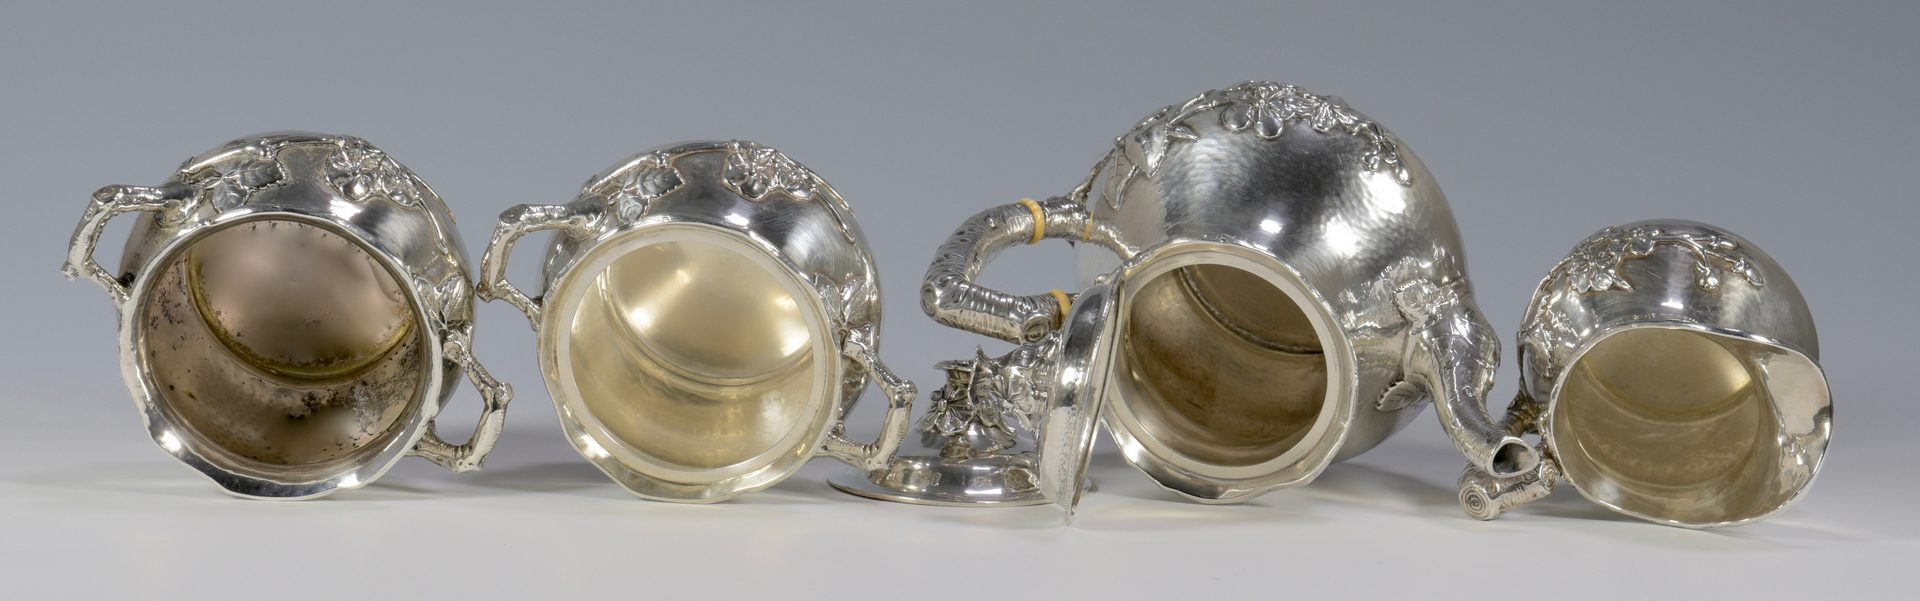 Lot 56: Gorham Hammered Aesthetic Silver Tea Service